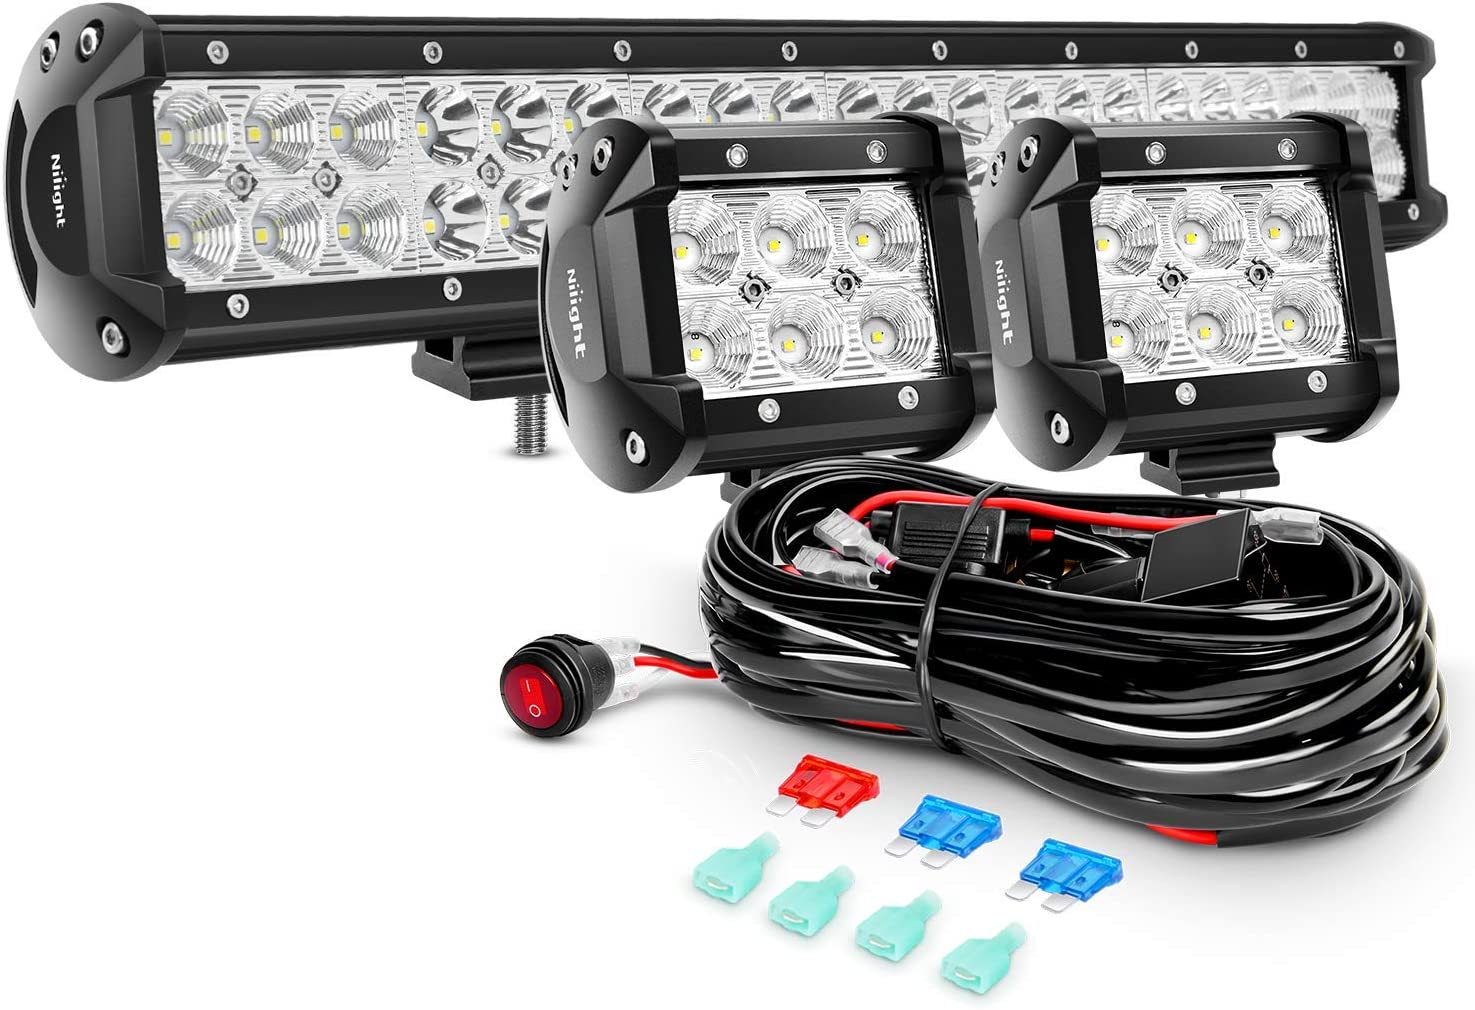 Nilight 20Inch 126W Spot Flood Combo Led Off Road Led Light Bar 2PCS 18w 4Inch Flood LED Pods With 16AWG Wiring Harness Kit-2 Lead, 2 Years Warranty